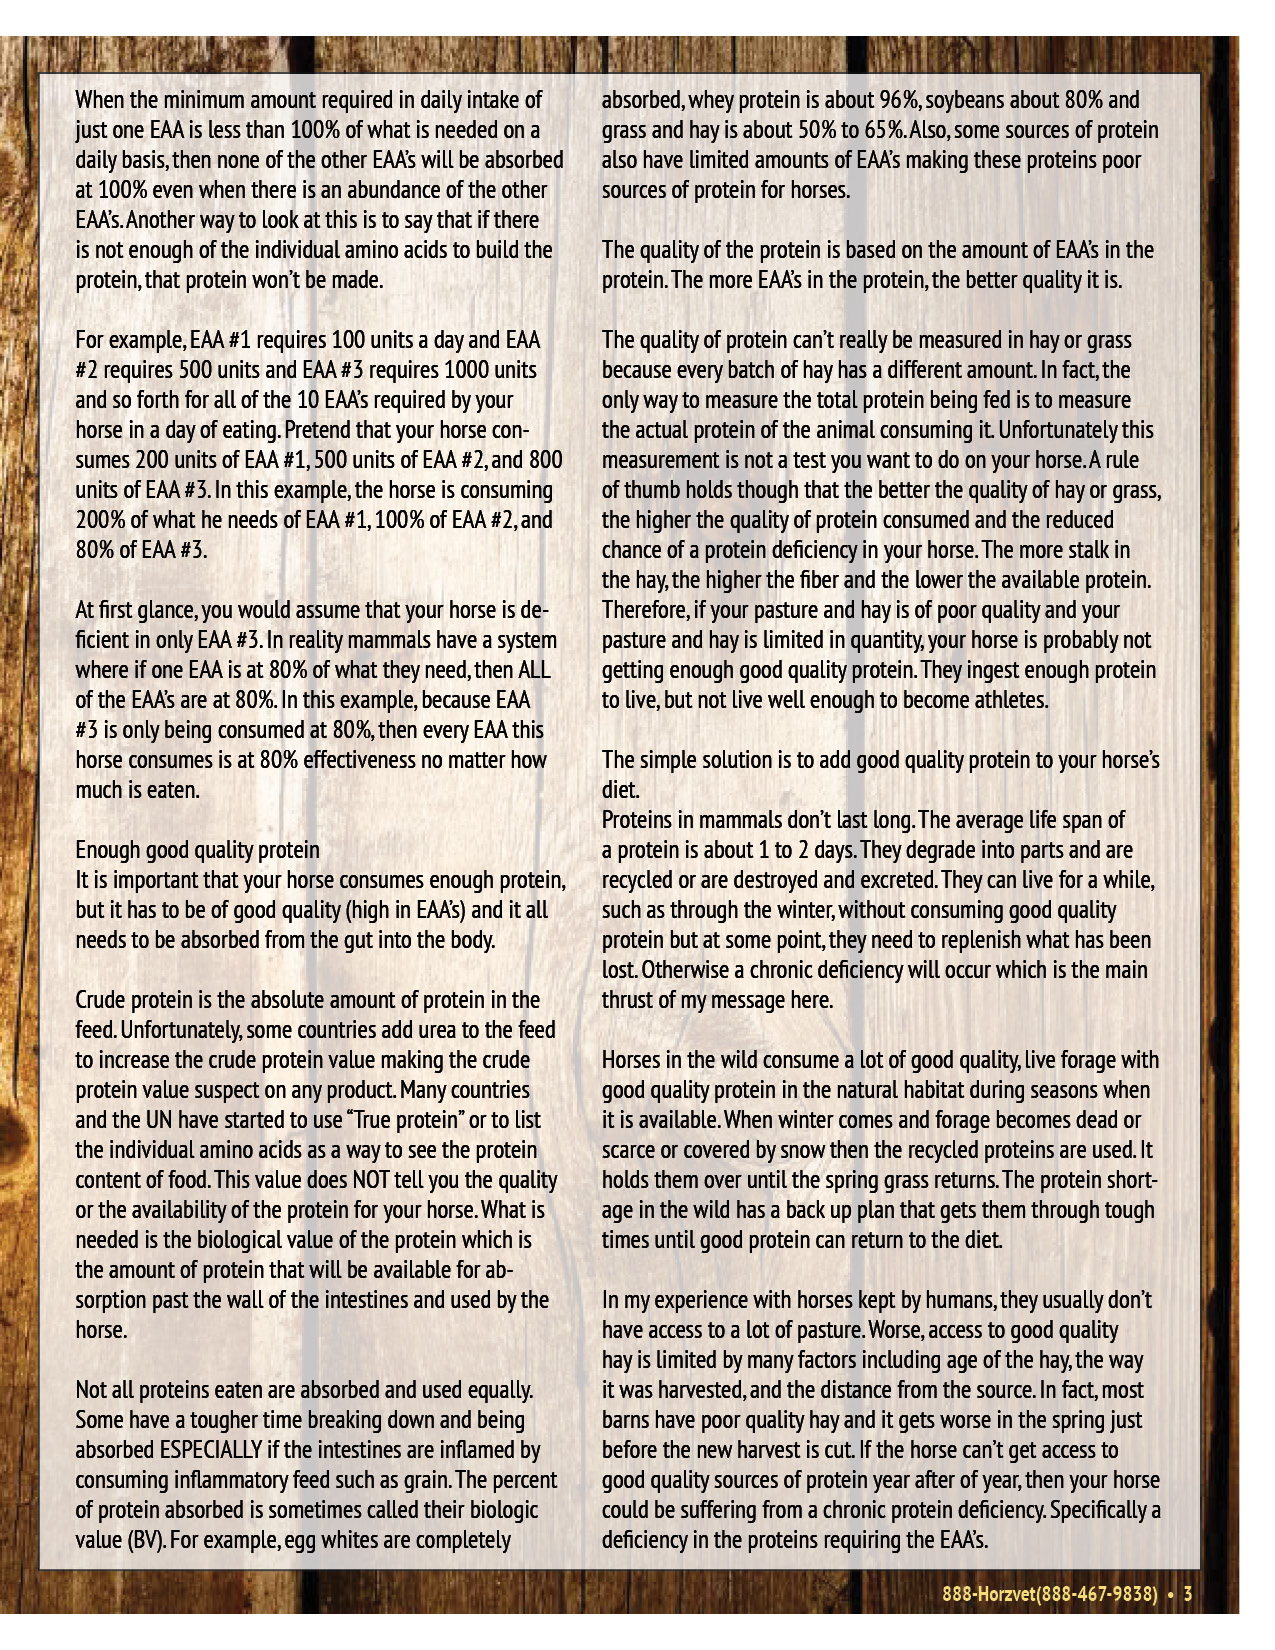 The Equine Practice Rounds™ Vol 1 Issue 3 page 3 of 4